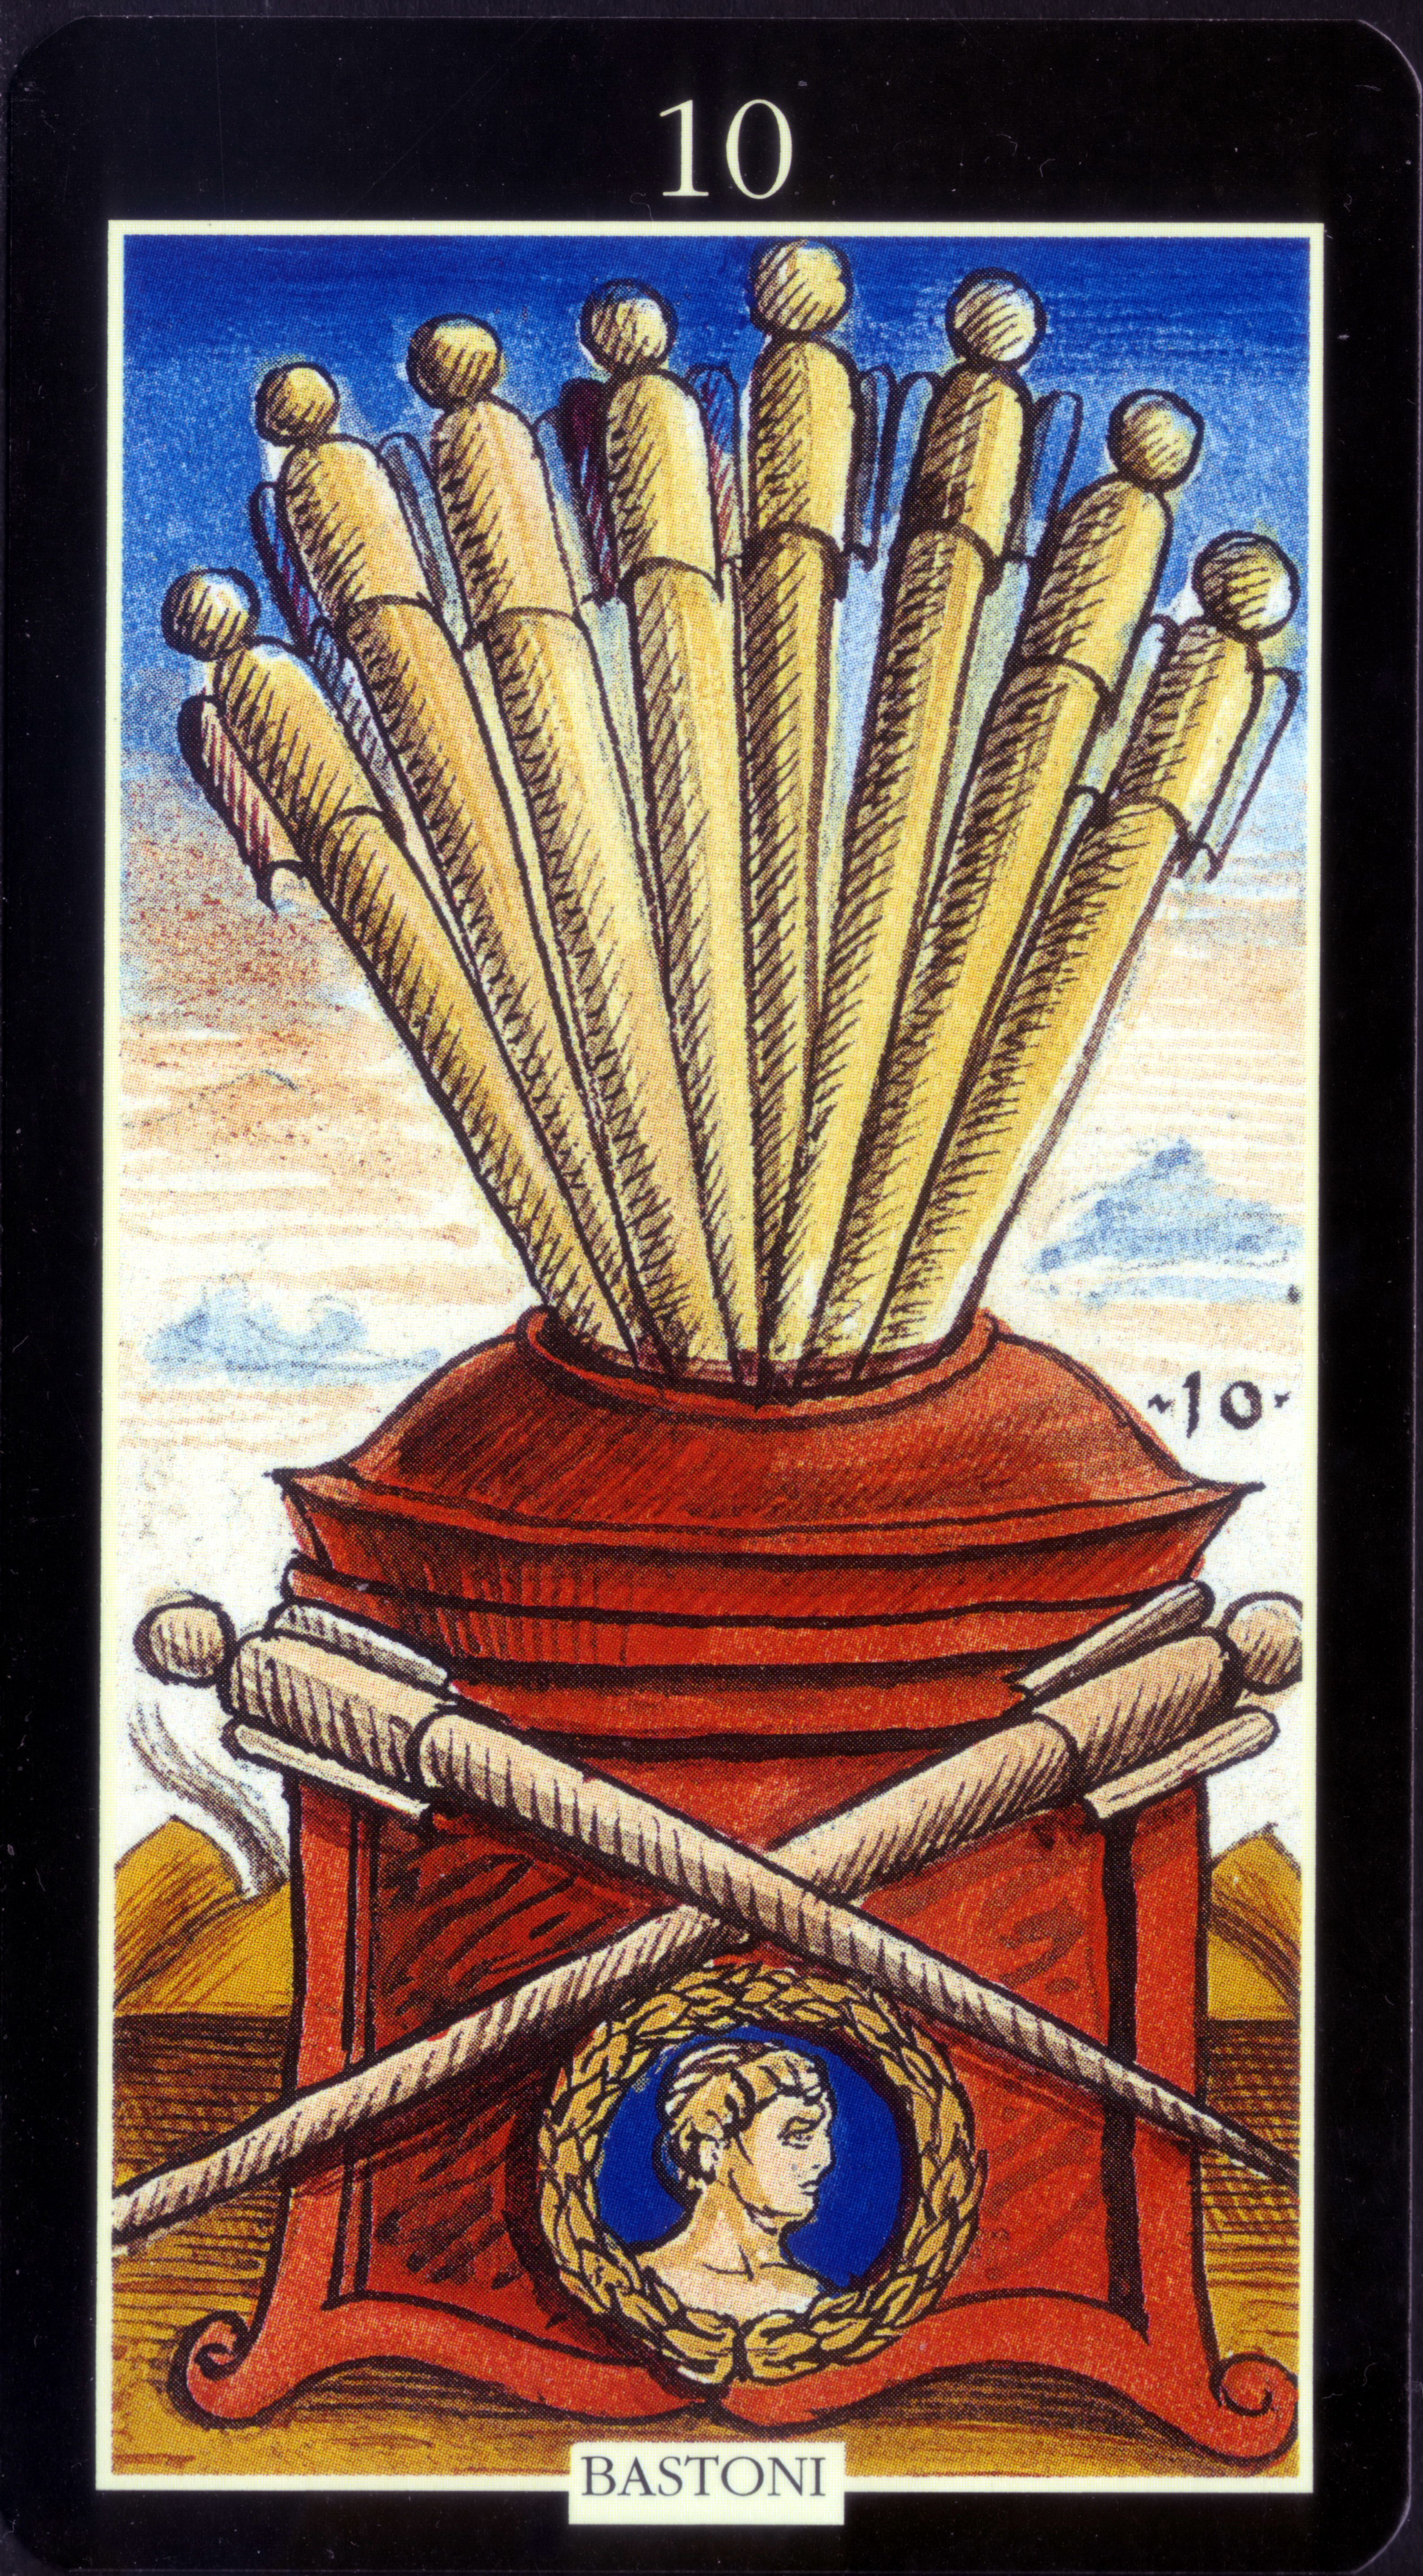 10 of wands from sola busca tarot deck by lo scarabeo 2016